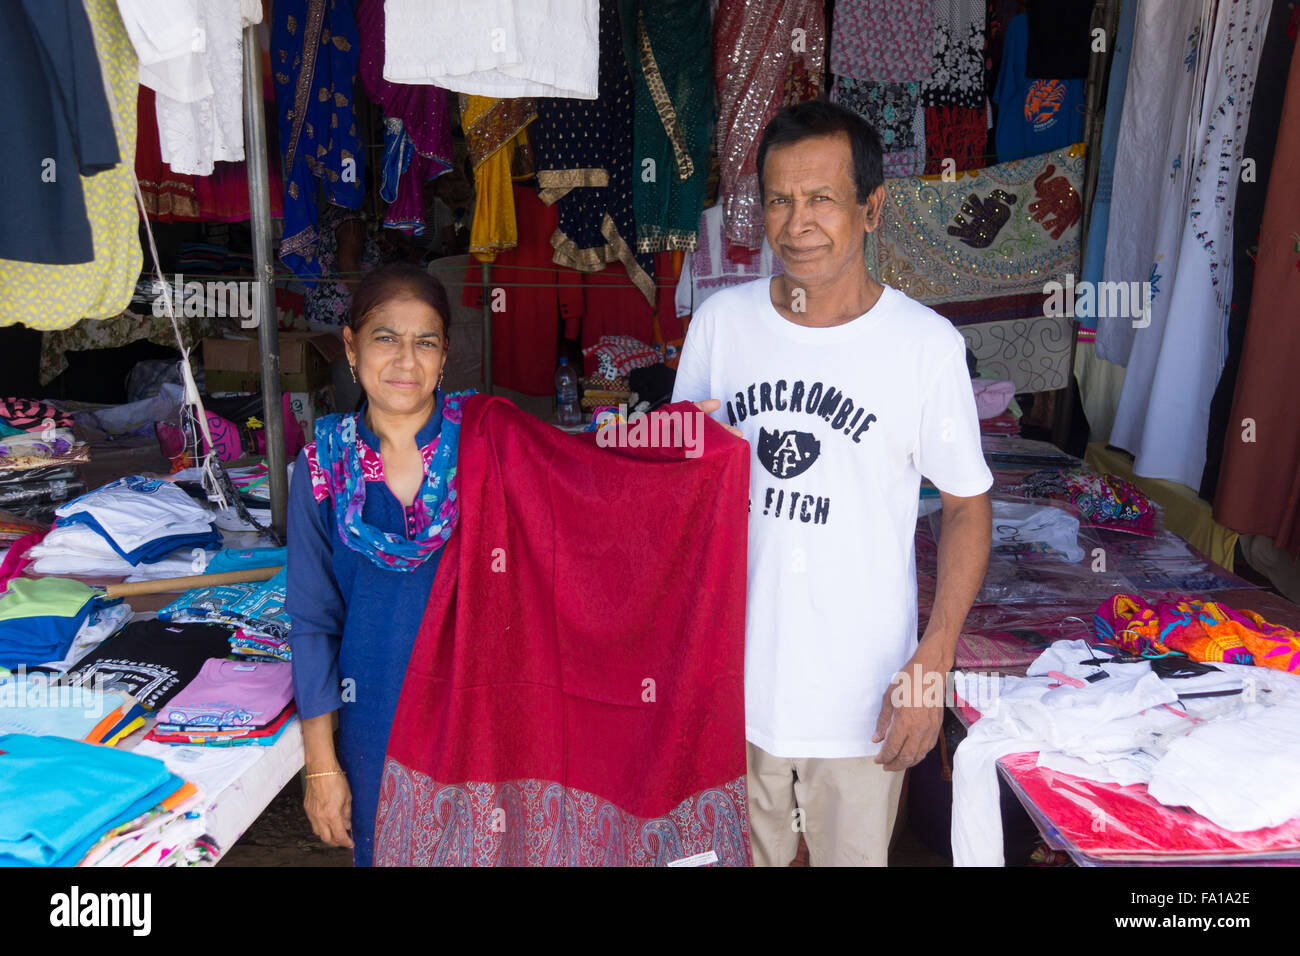 A local couple selling garments at the textile market at Goodlands in northern Mauritius - Stock Image